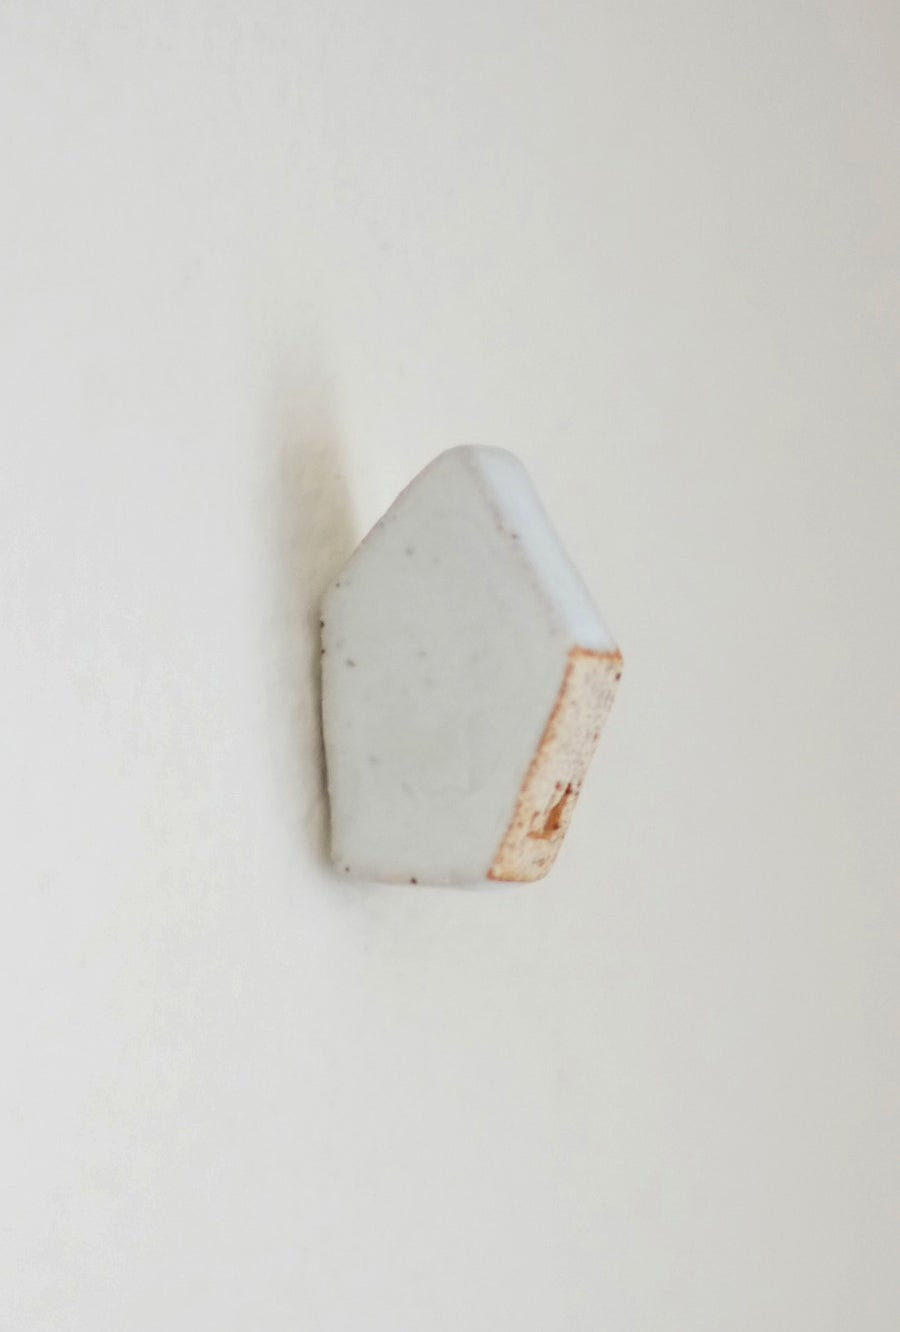 Image of f2 ceramic knob